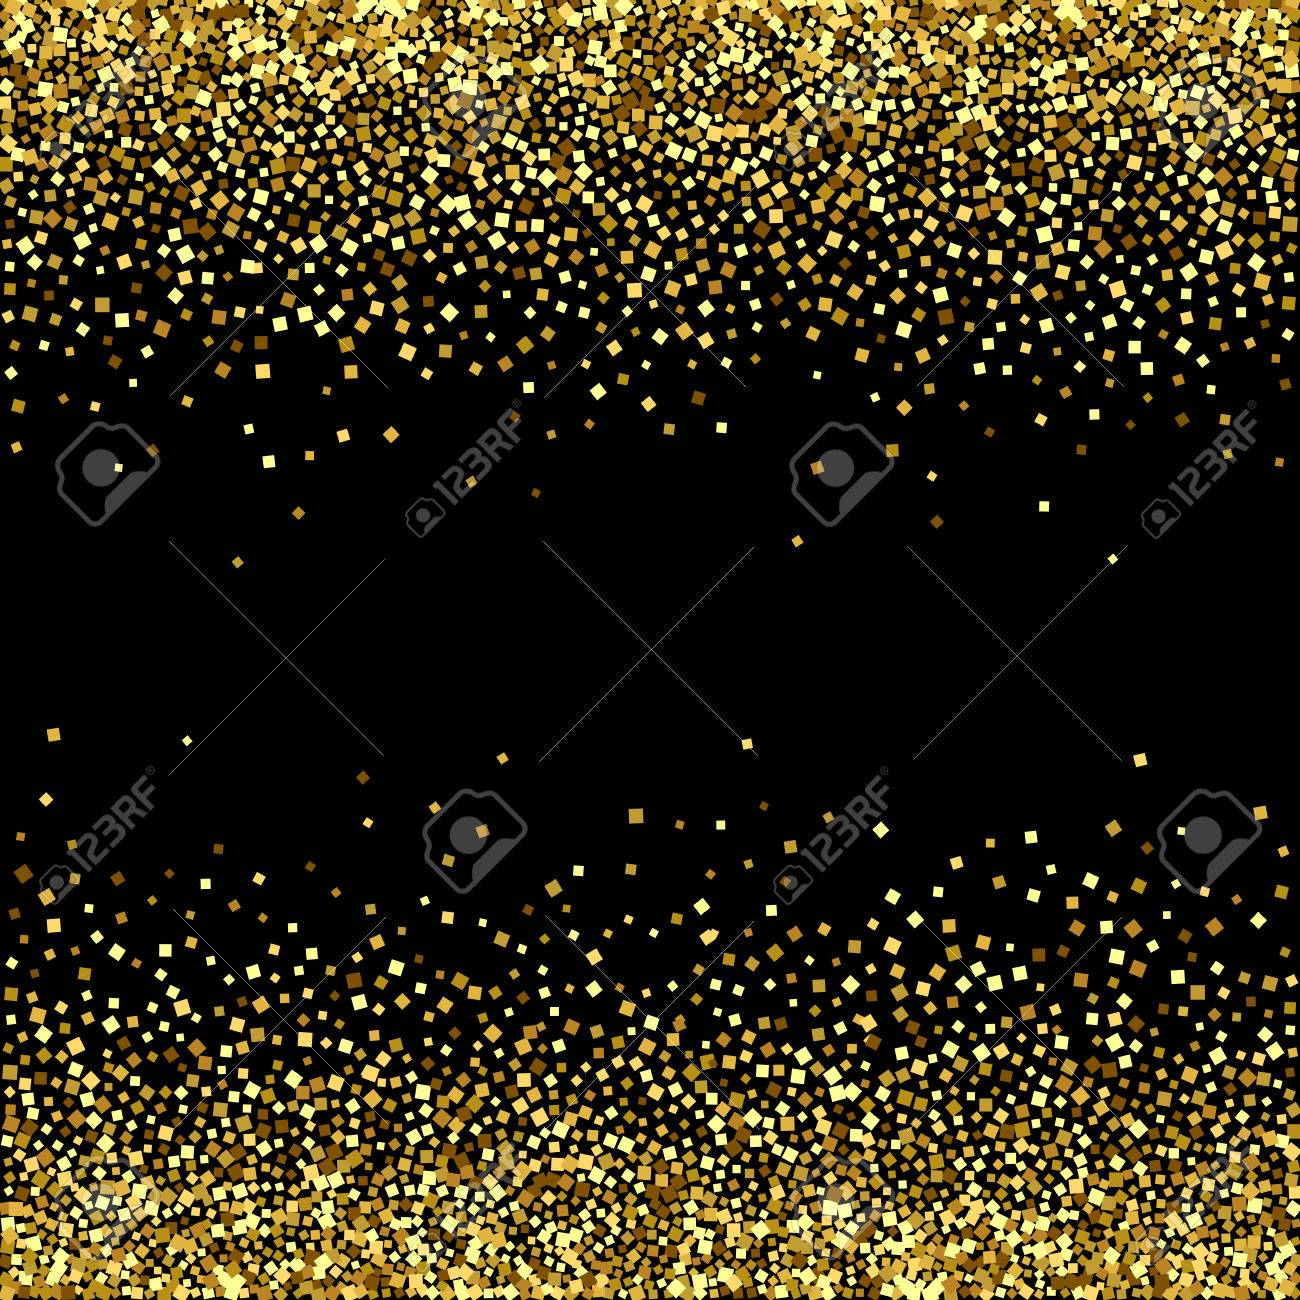 Vector Black Background With Gold Glitter Sparkle Royalty Free Cliparts,  Vectors, And Stock Illustration. Image 75340859.